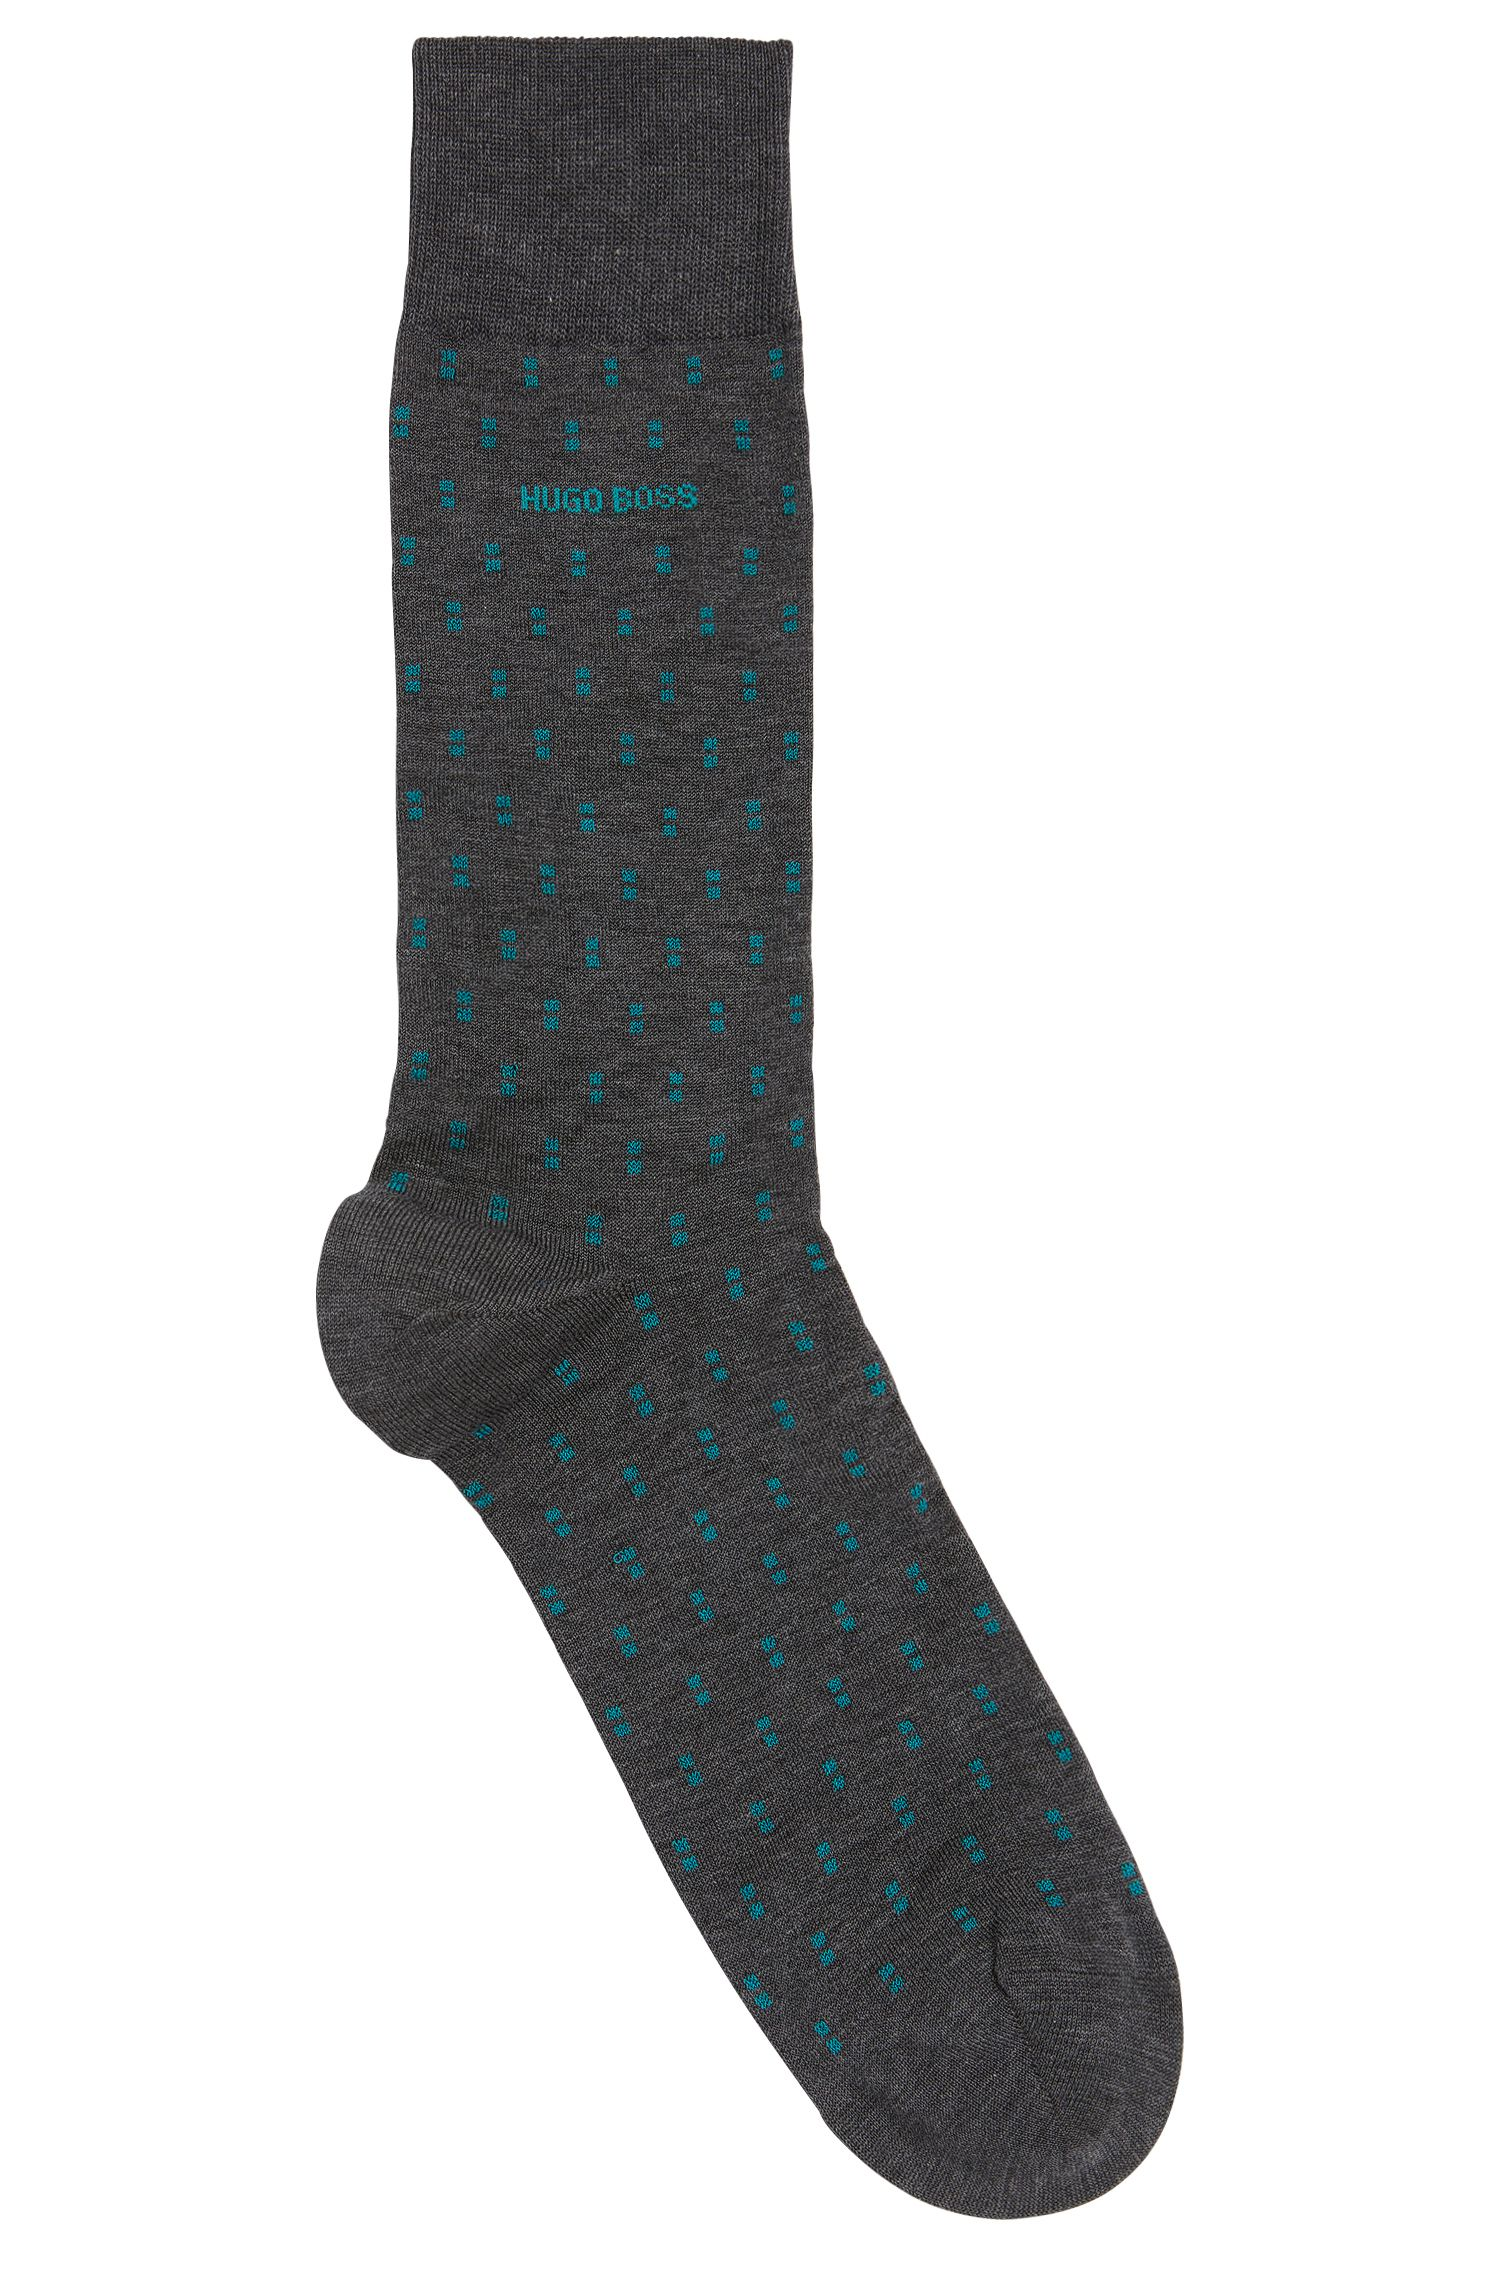 'RS Design US' | Dash Pattern Stretch Cotton Blend Socks